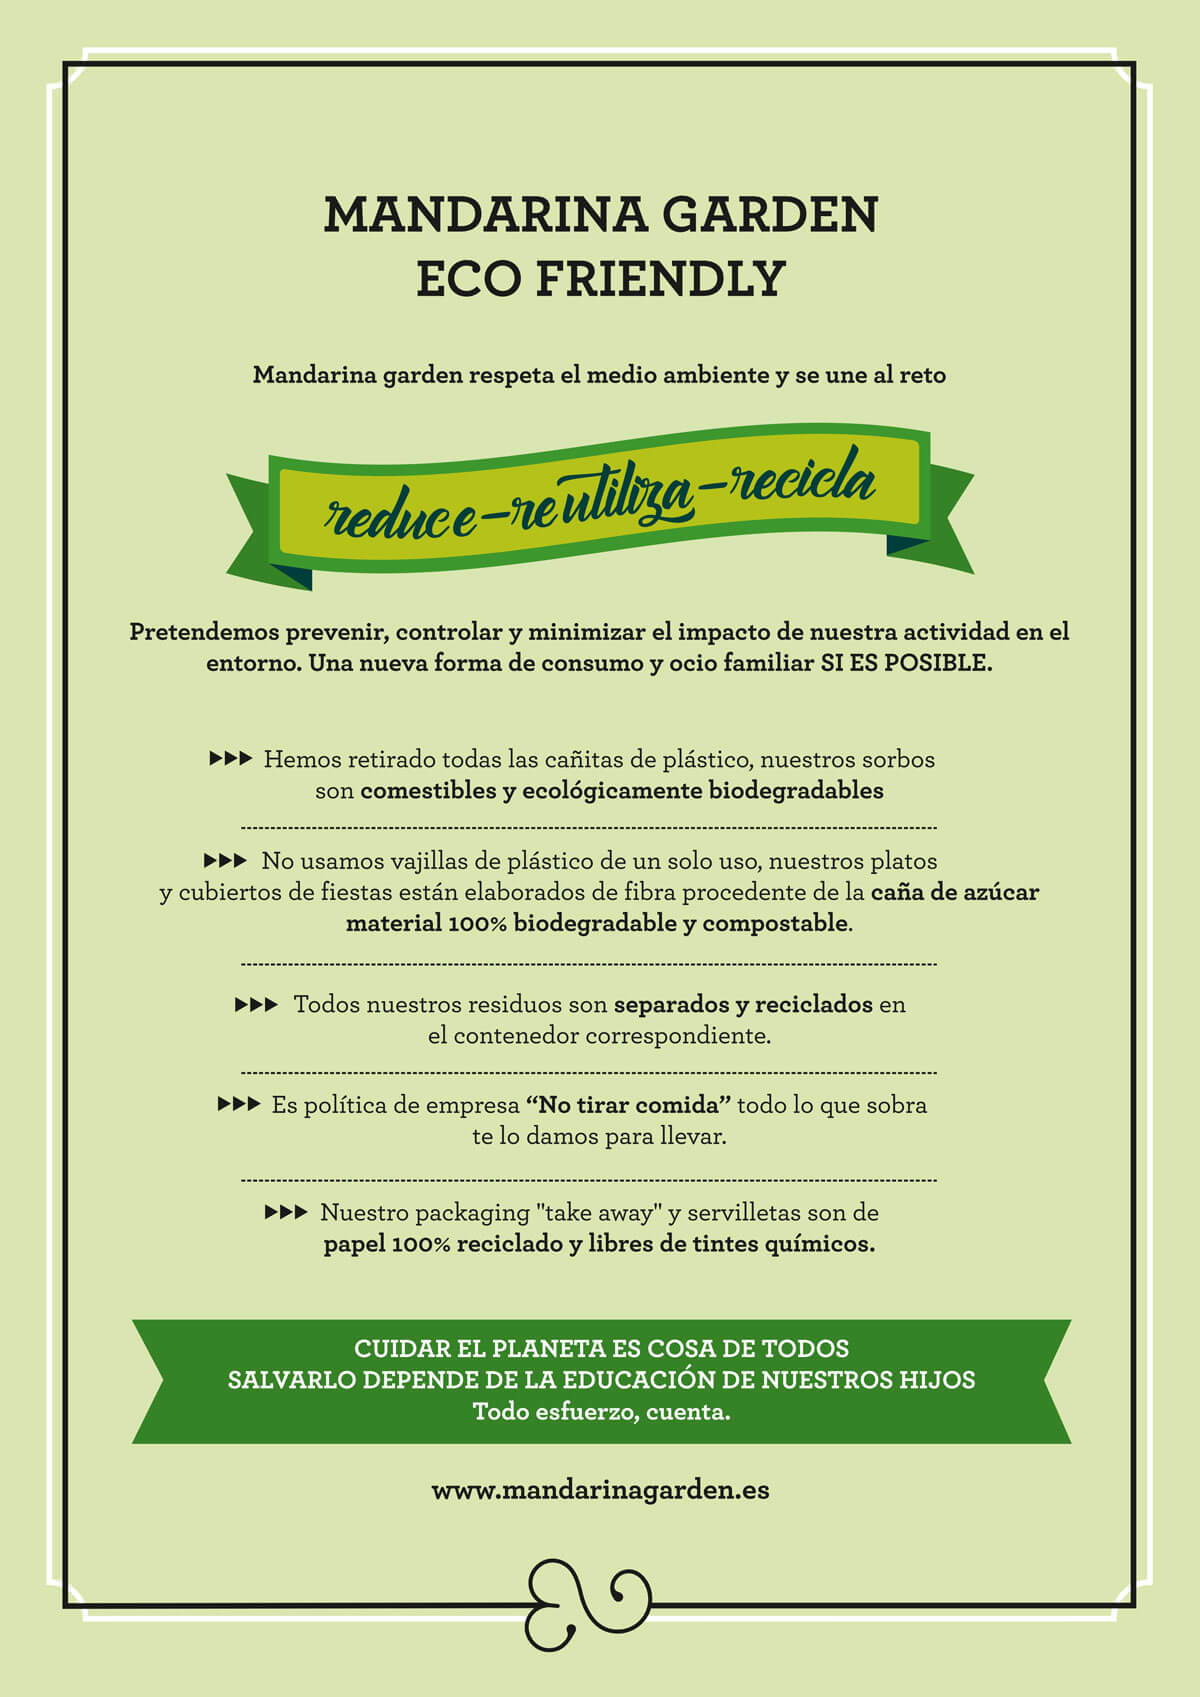 Mandarina garden business policy for environmental sustainability